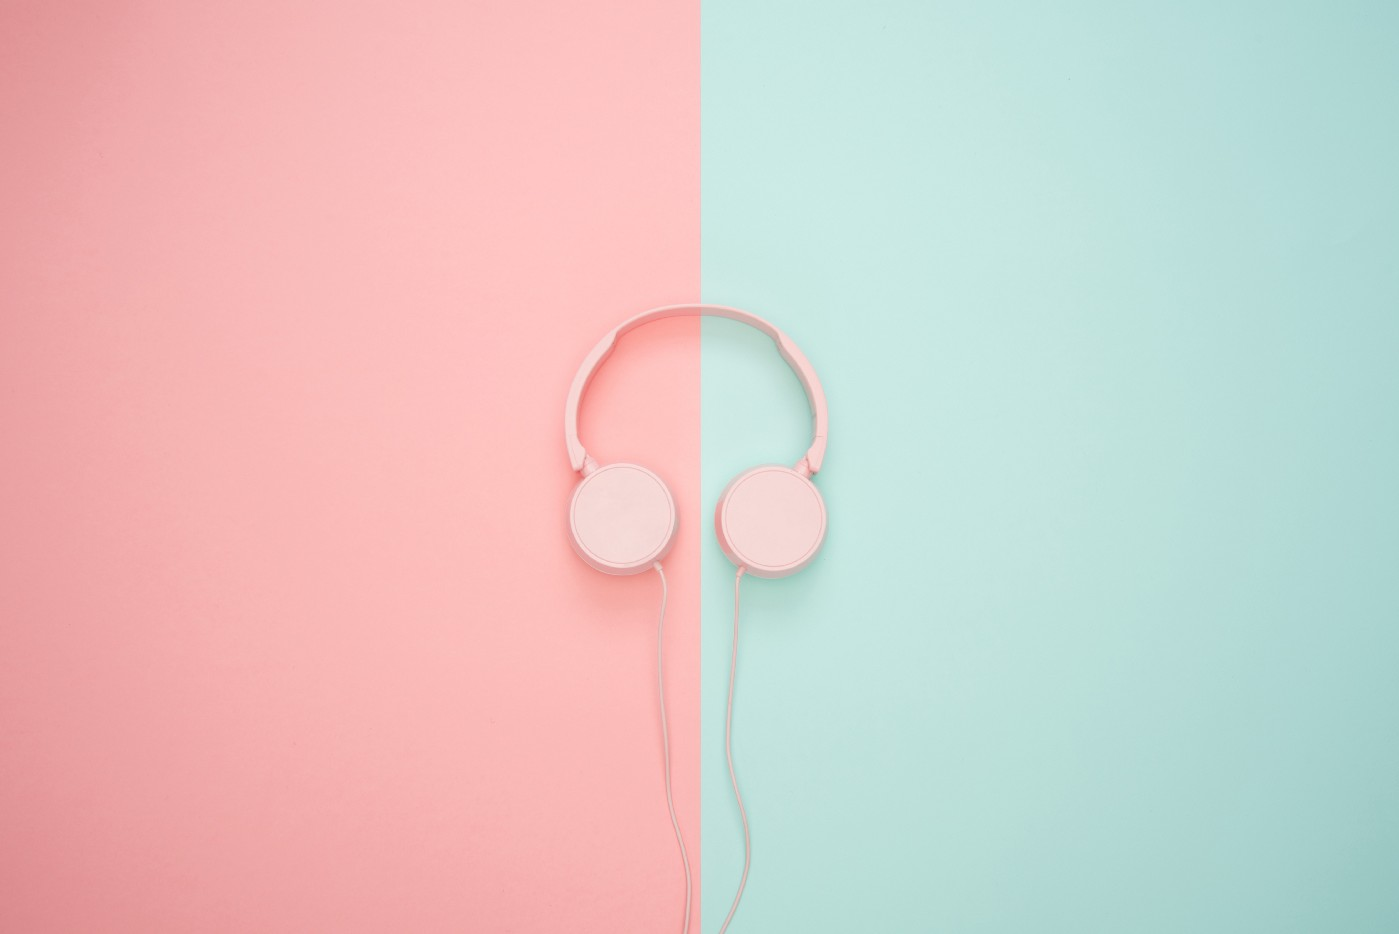 A pink headphone on top of colorful background split into pink and turquoise.